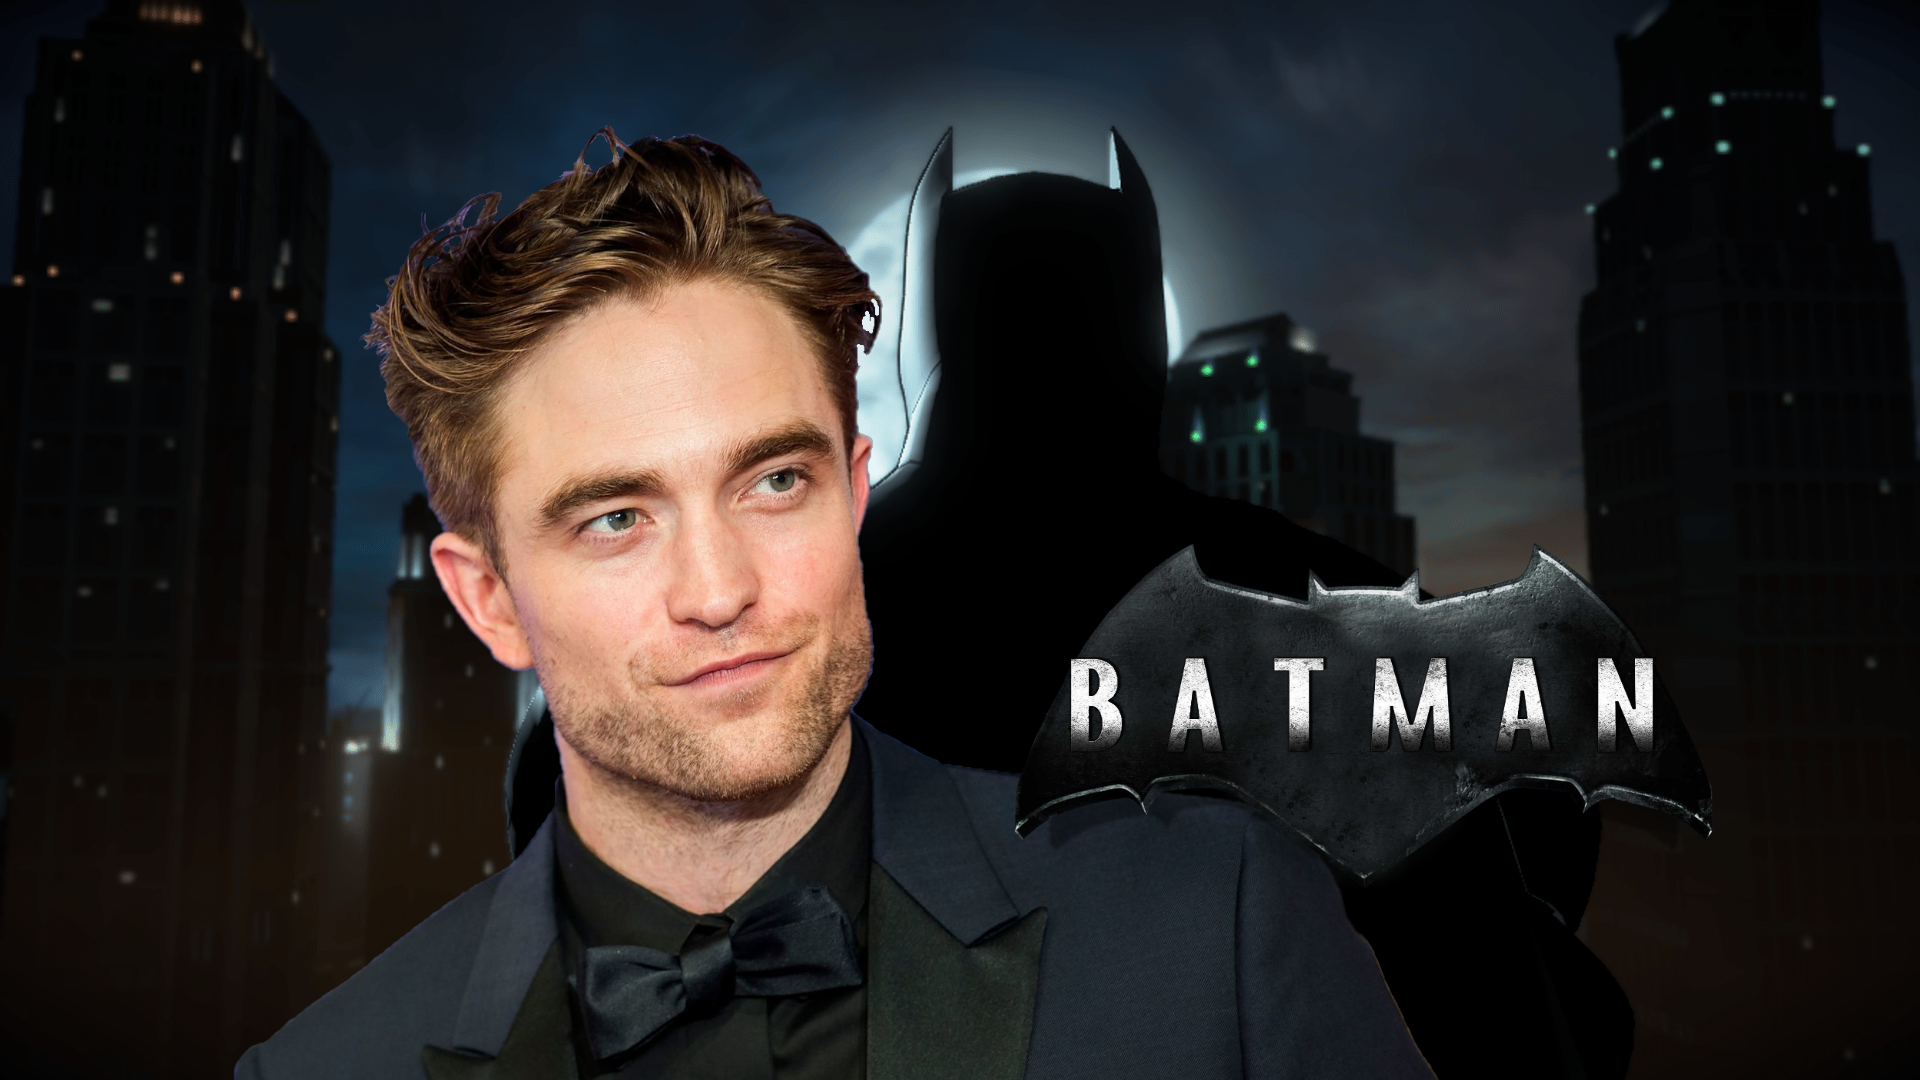 It's Official | Robert Pattinson Cast as The Dark Knight for Matt Reeves' The Batman